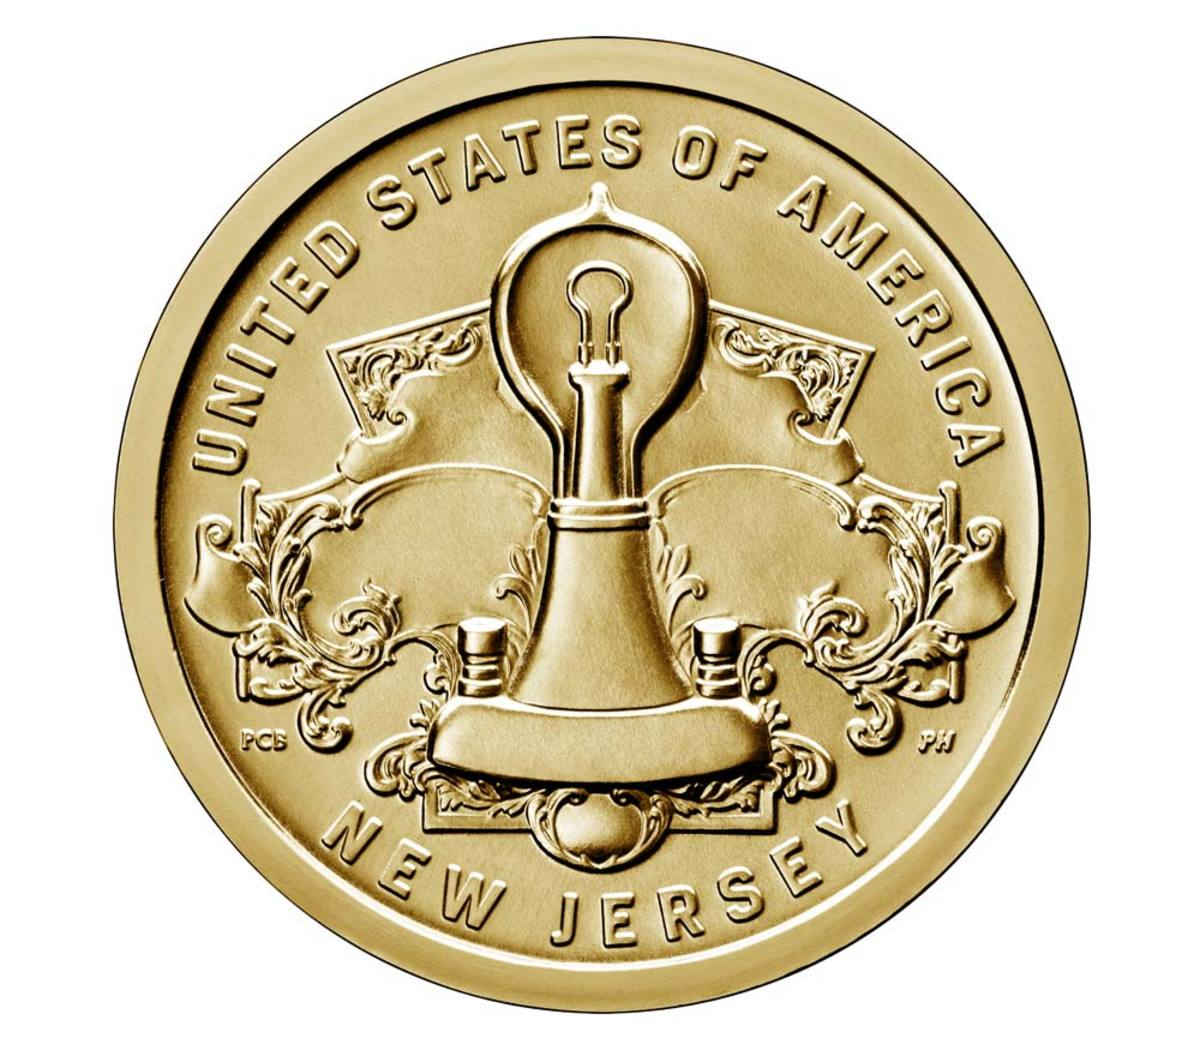 The American Innovation coin commemorating New Jersey. (Image courtesy U.S. Mint)